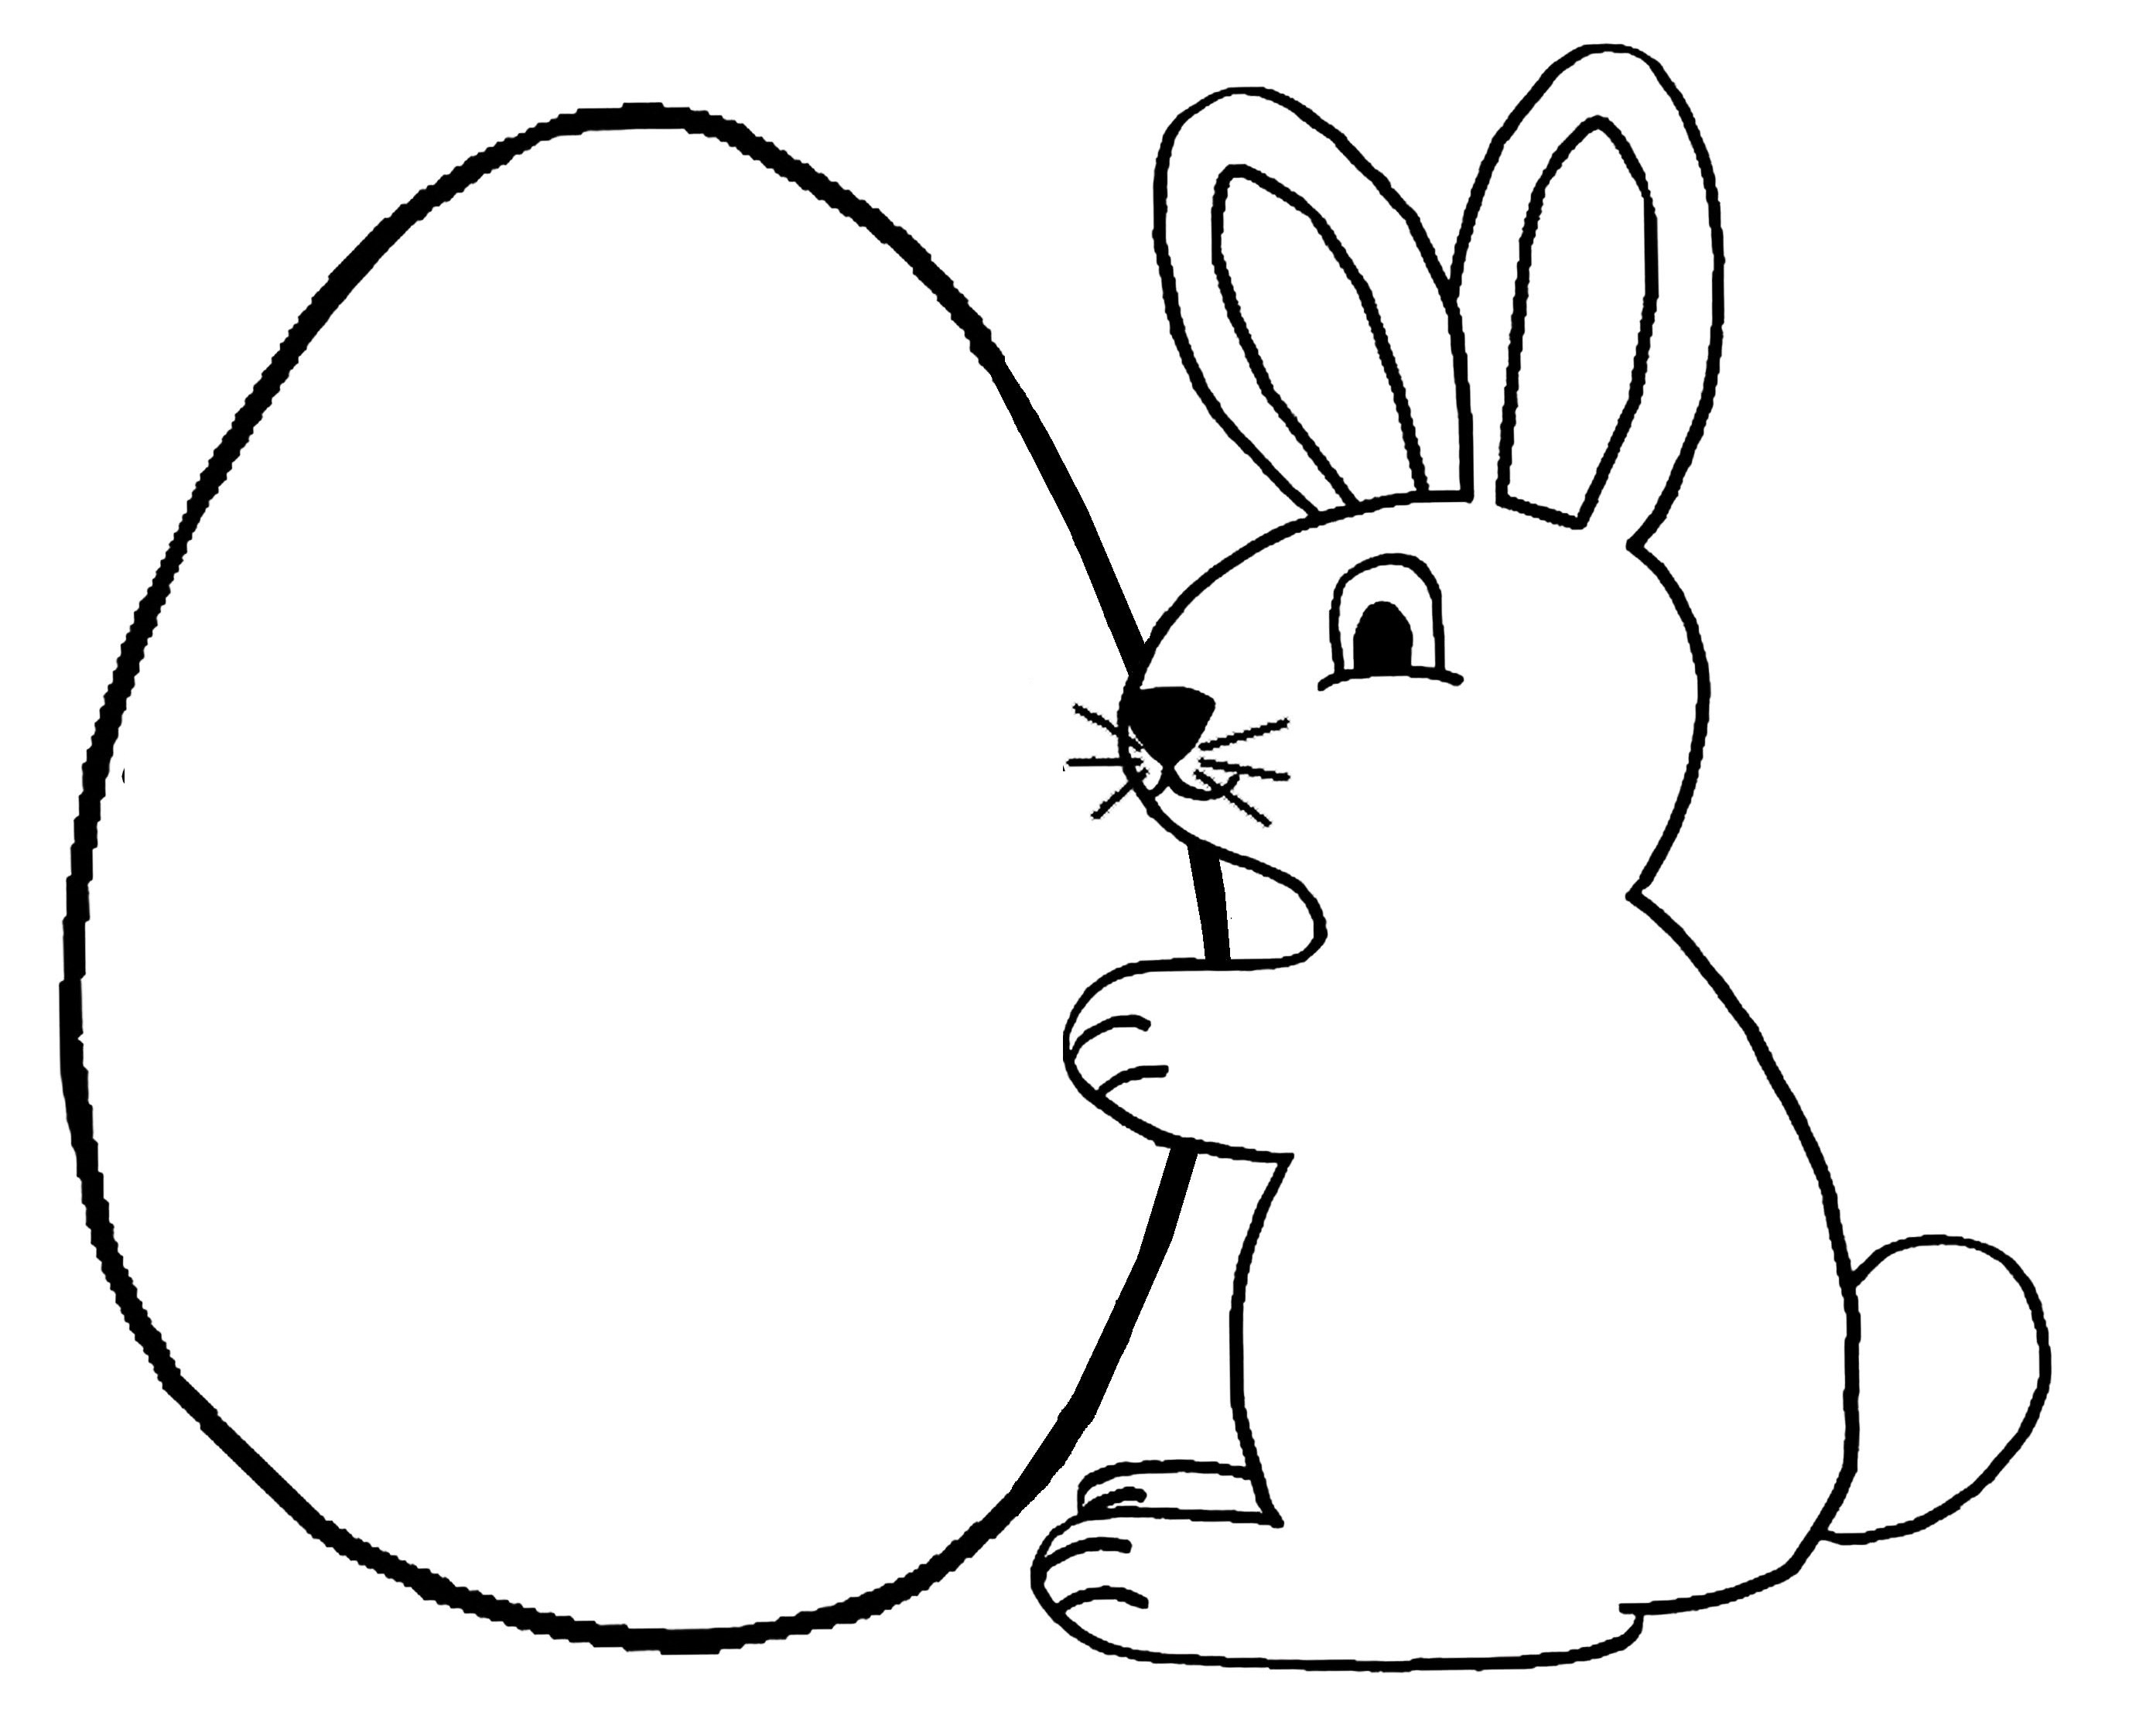 Lapin coloriage gallery - Coloriages lapin ...